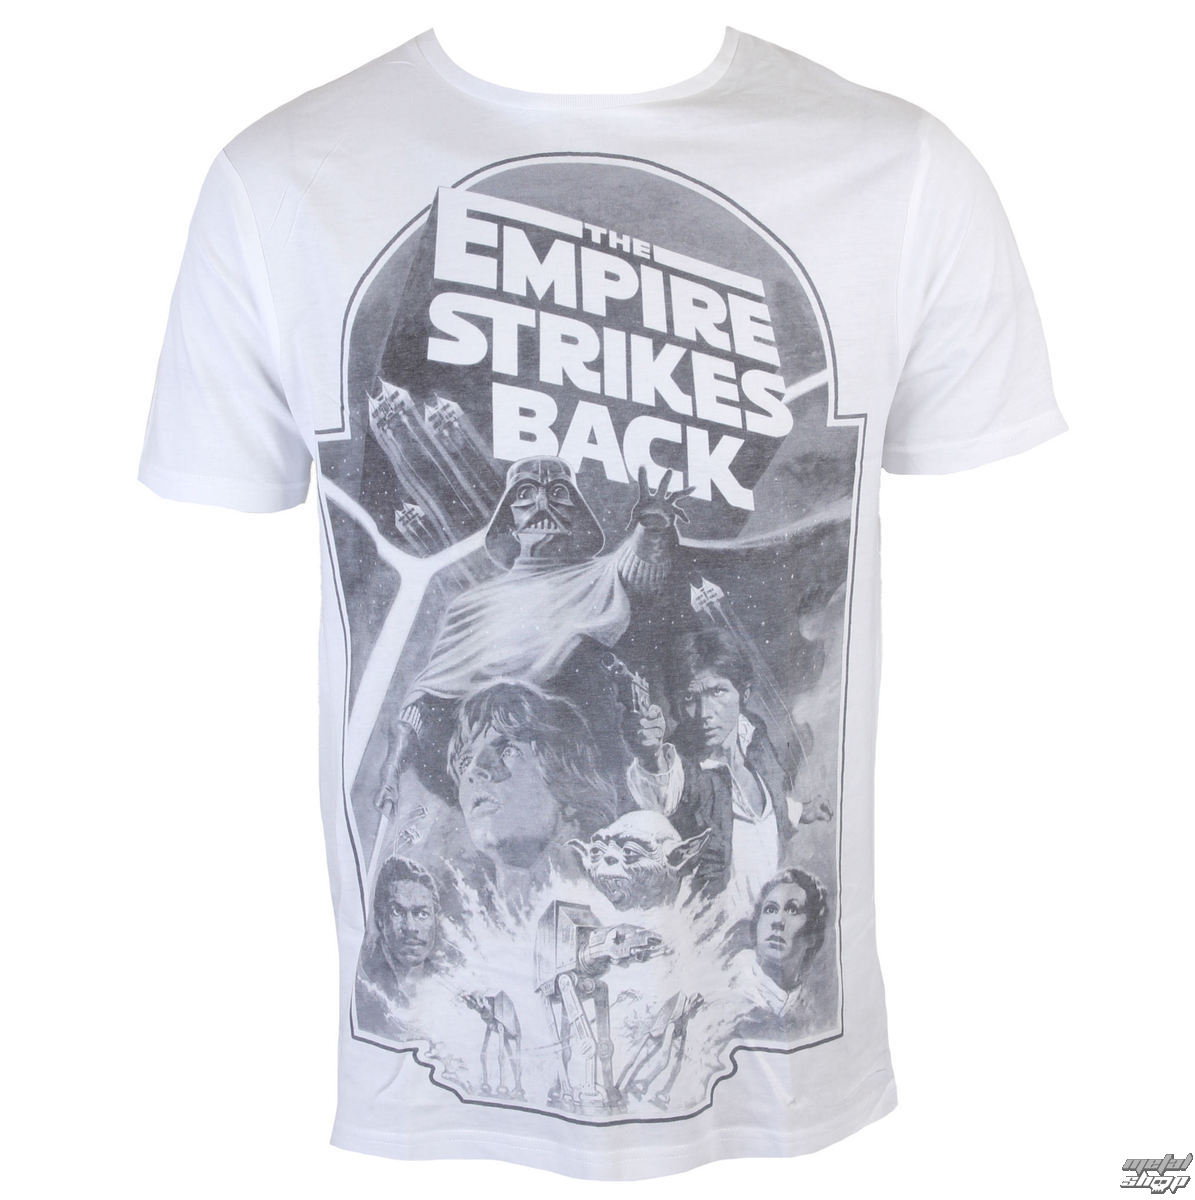 tričko INDIEGO Star Wars Empire Strikes Back Sublimation šedá bílá S